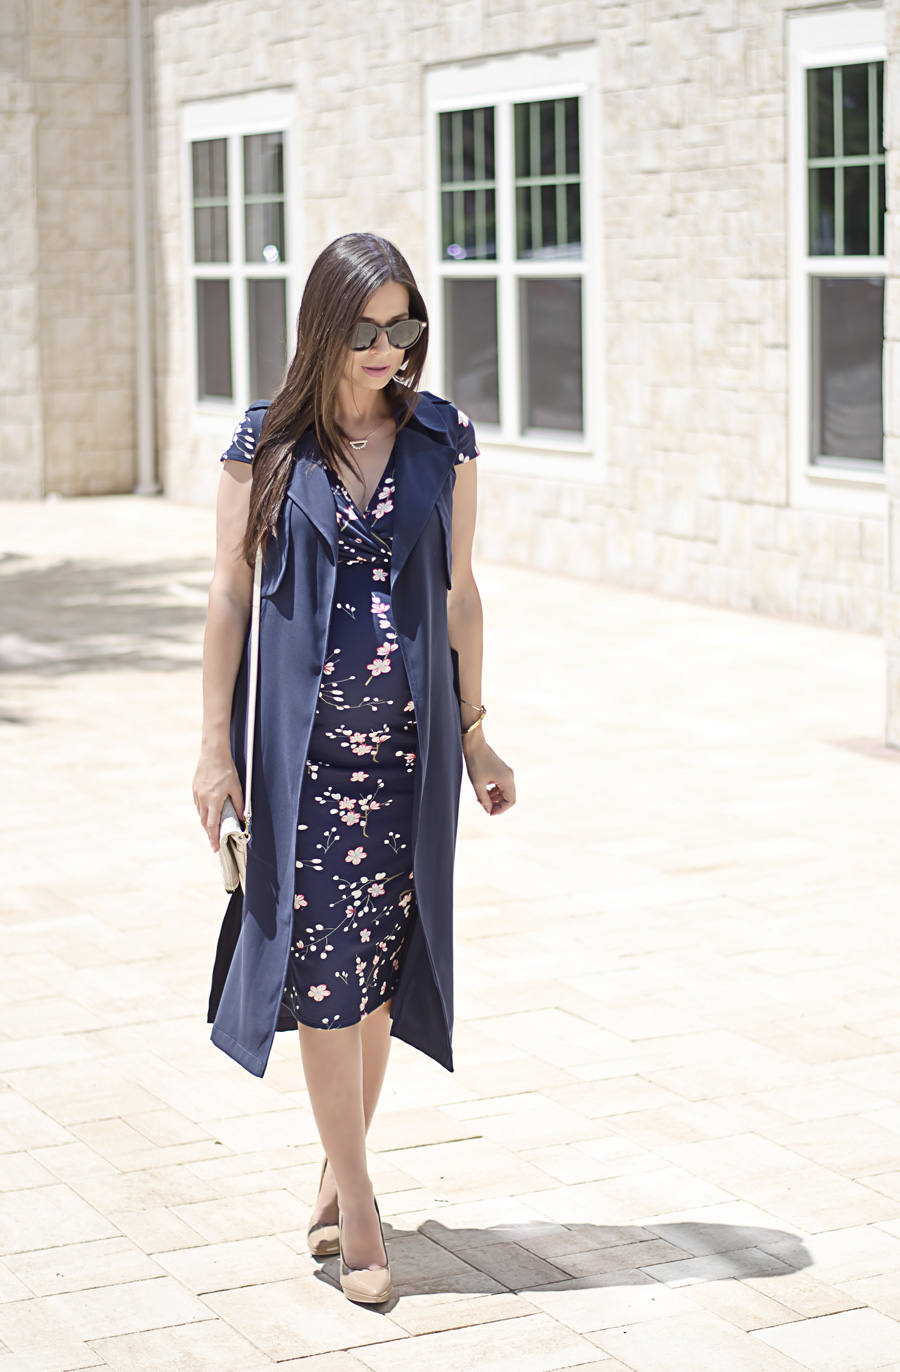 5 Tips to Make a Floral Dress Look Professional, Dorothy Perkins Floral Maternity Dress and Navy Sleeveless Trench Coat - e